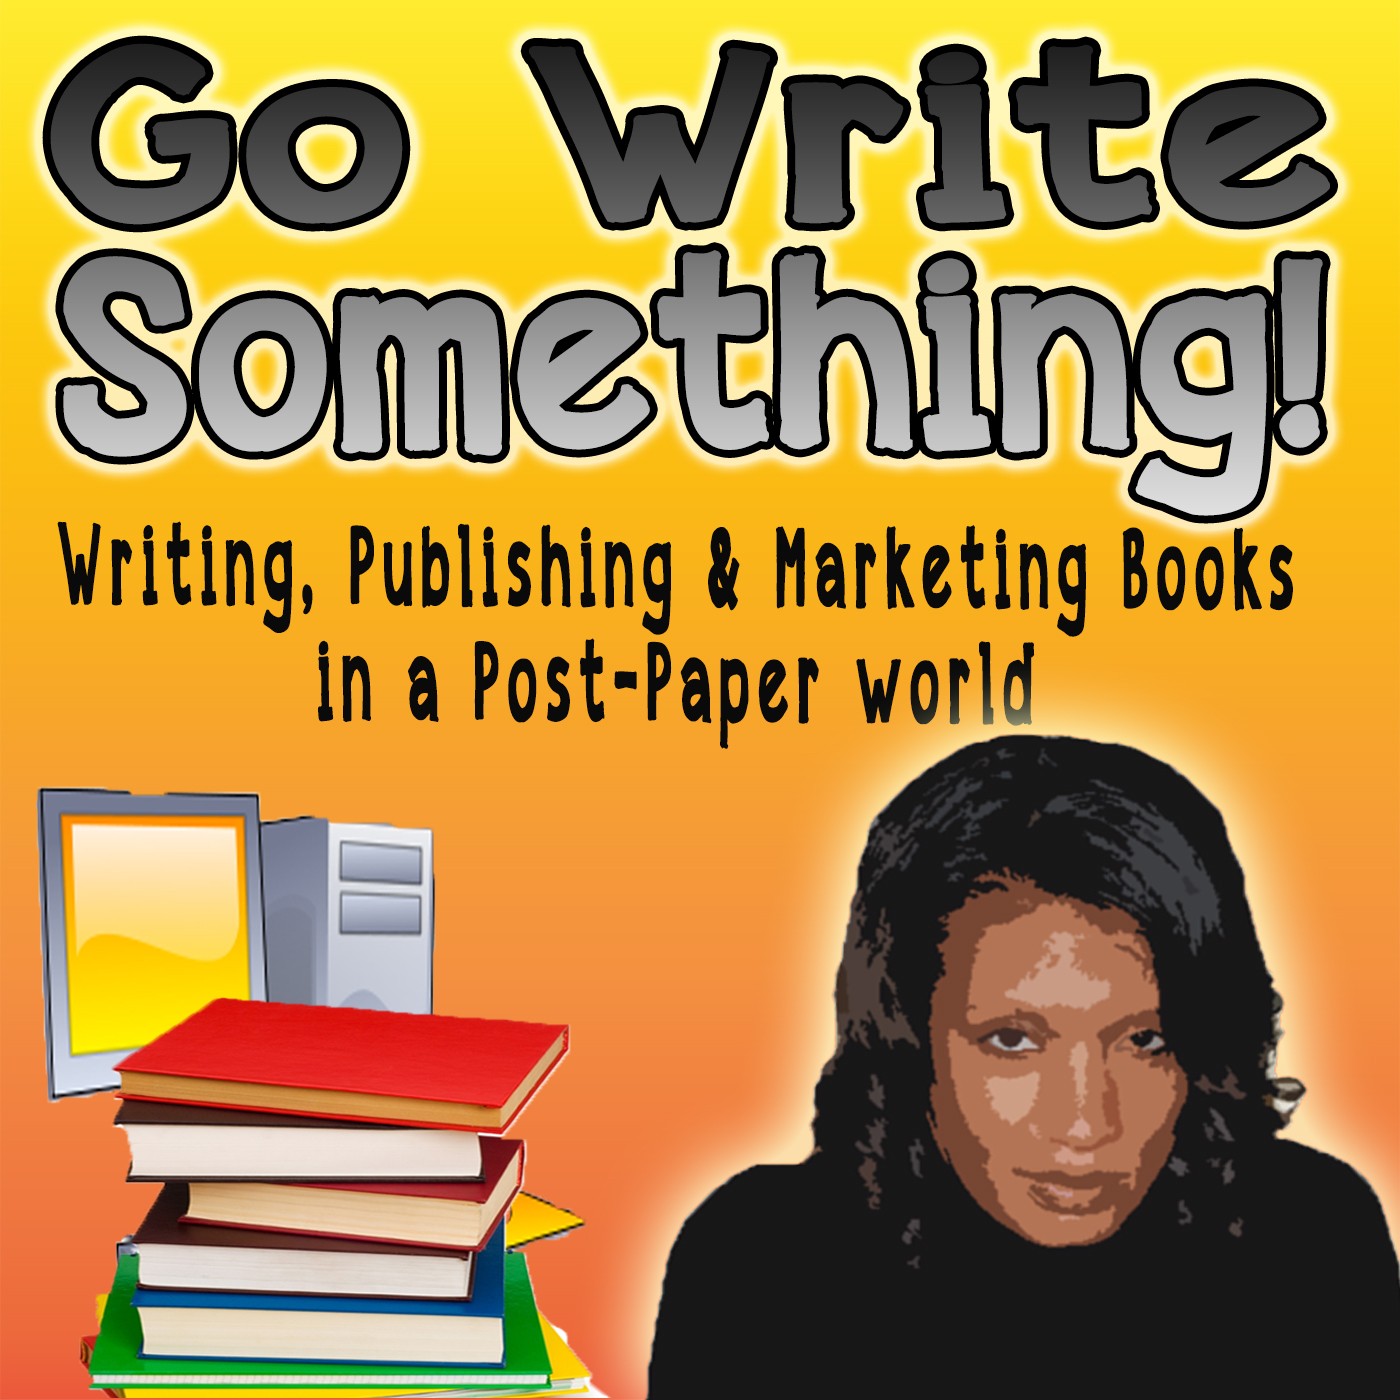 Go Write Something Podcast